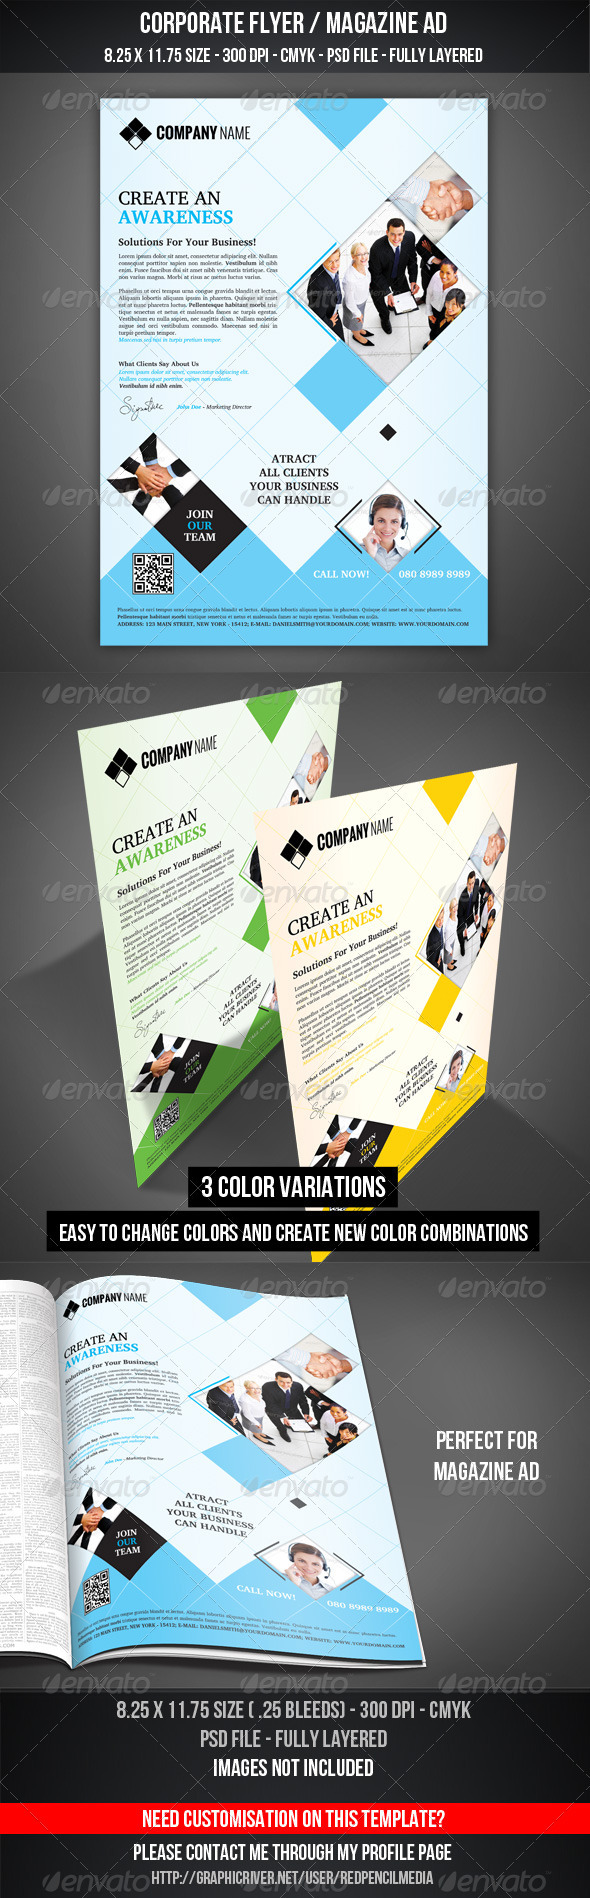 Corporate Flyer / Magazine AD - Corporate Flyers